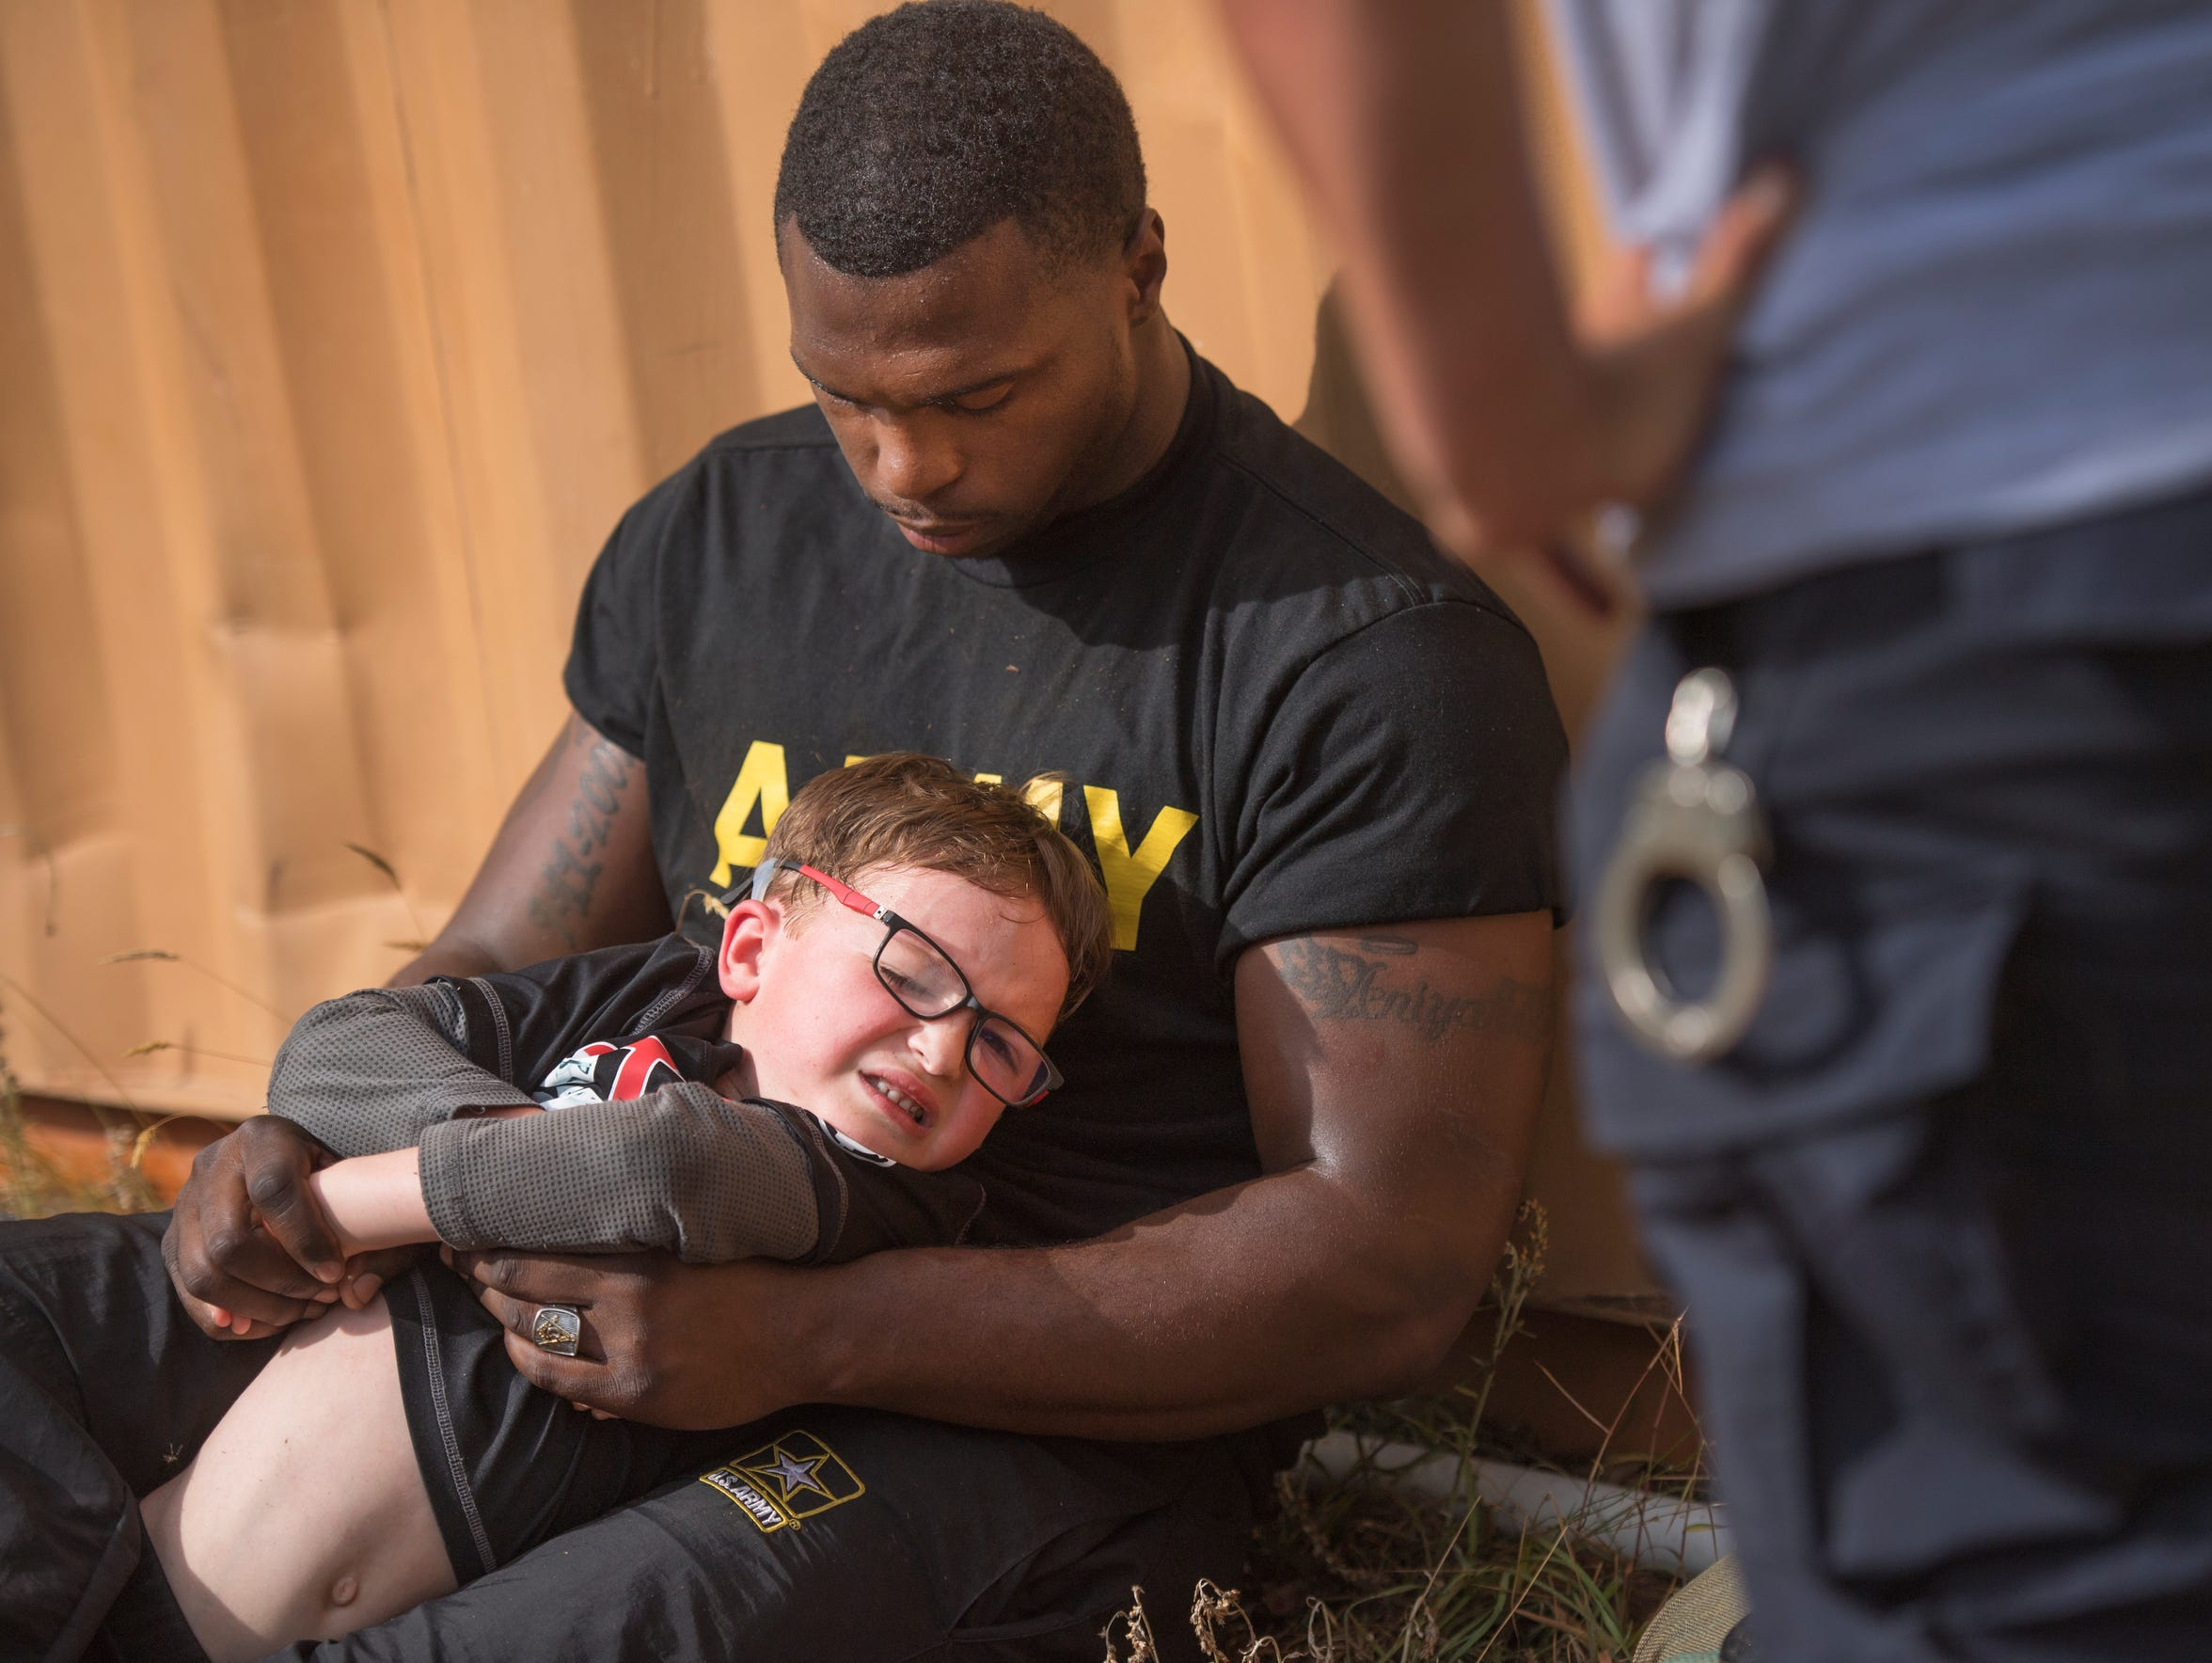 Logan Ford, 6, is held down by Sergeant Kenneth Pitts